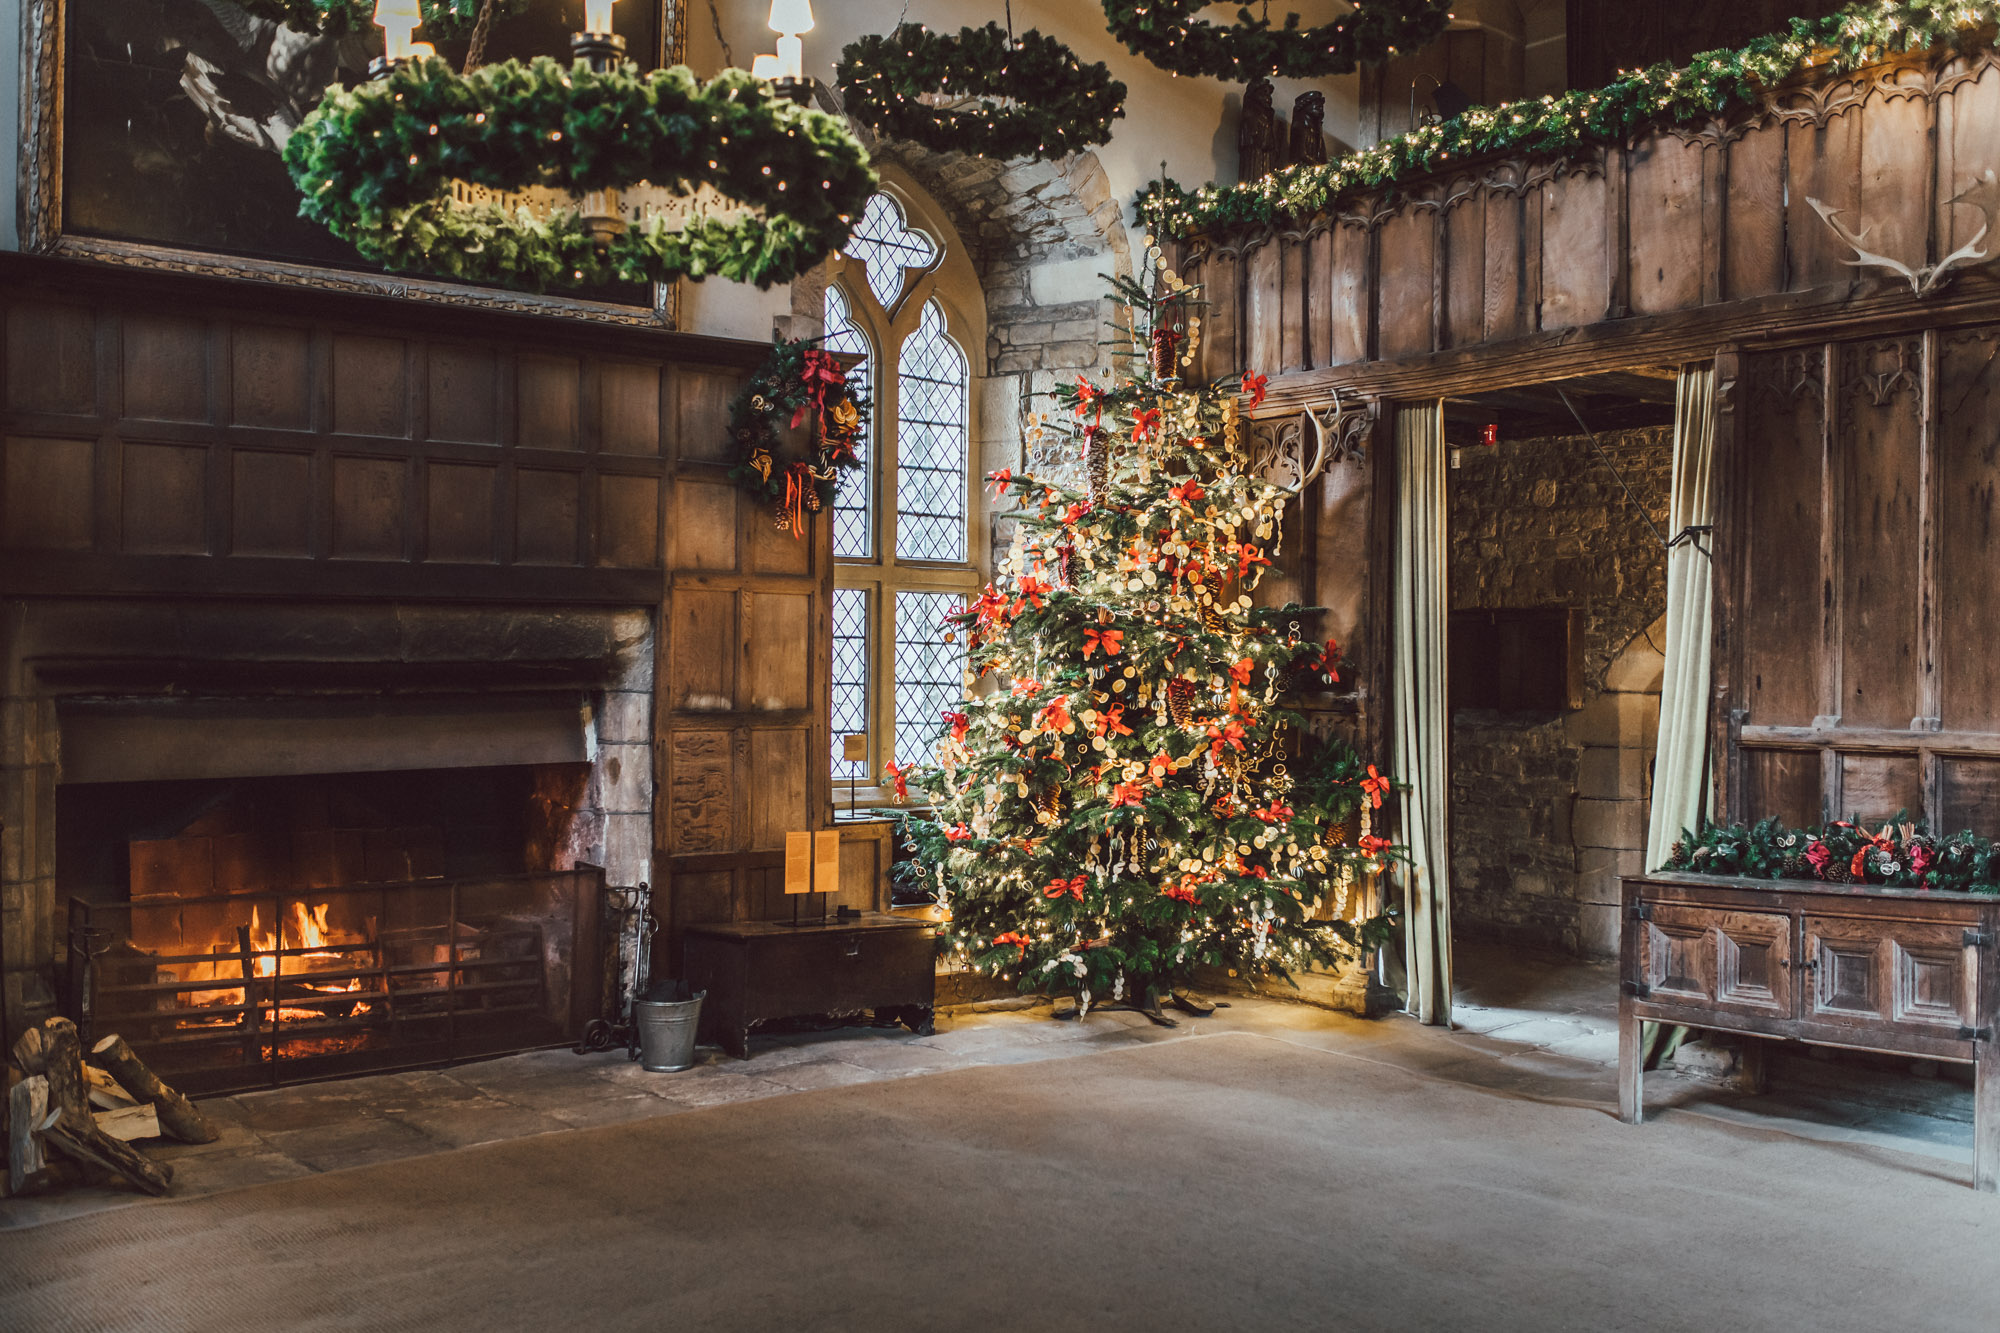 HaddonHall_Christmas2017_ByTomKahler_Lowres (59 of 192).jpg